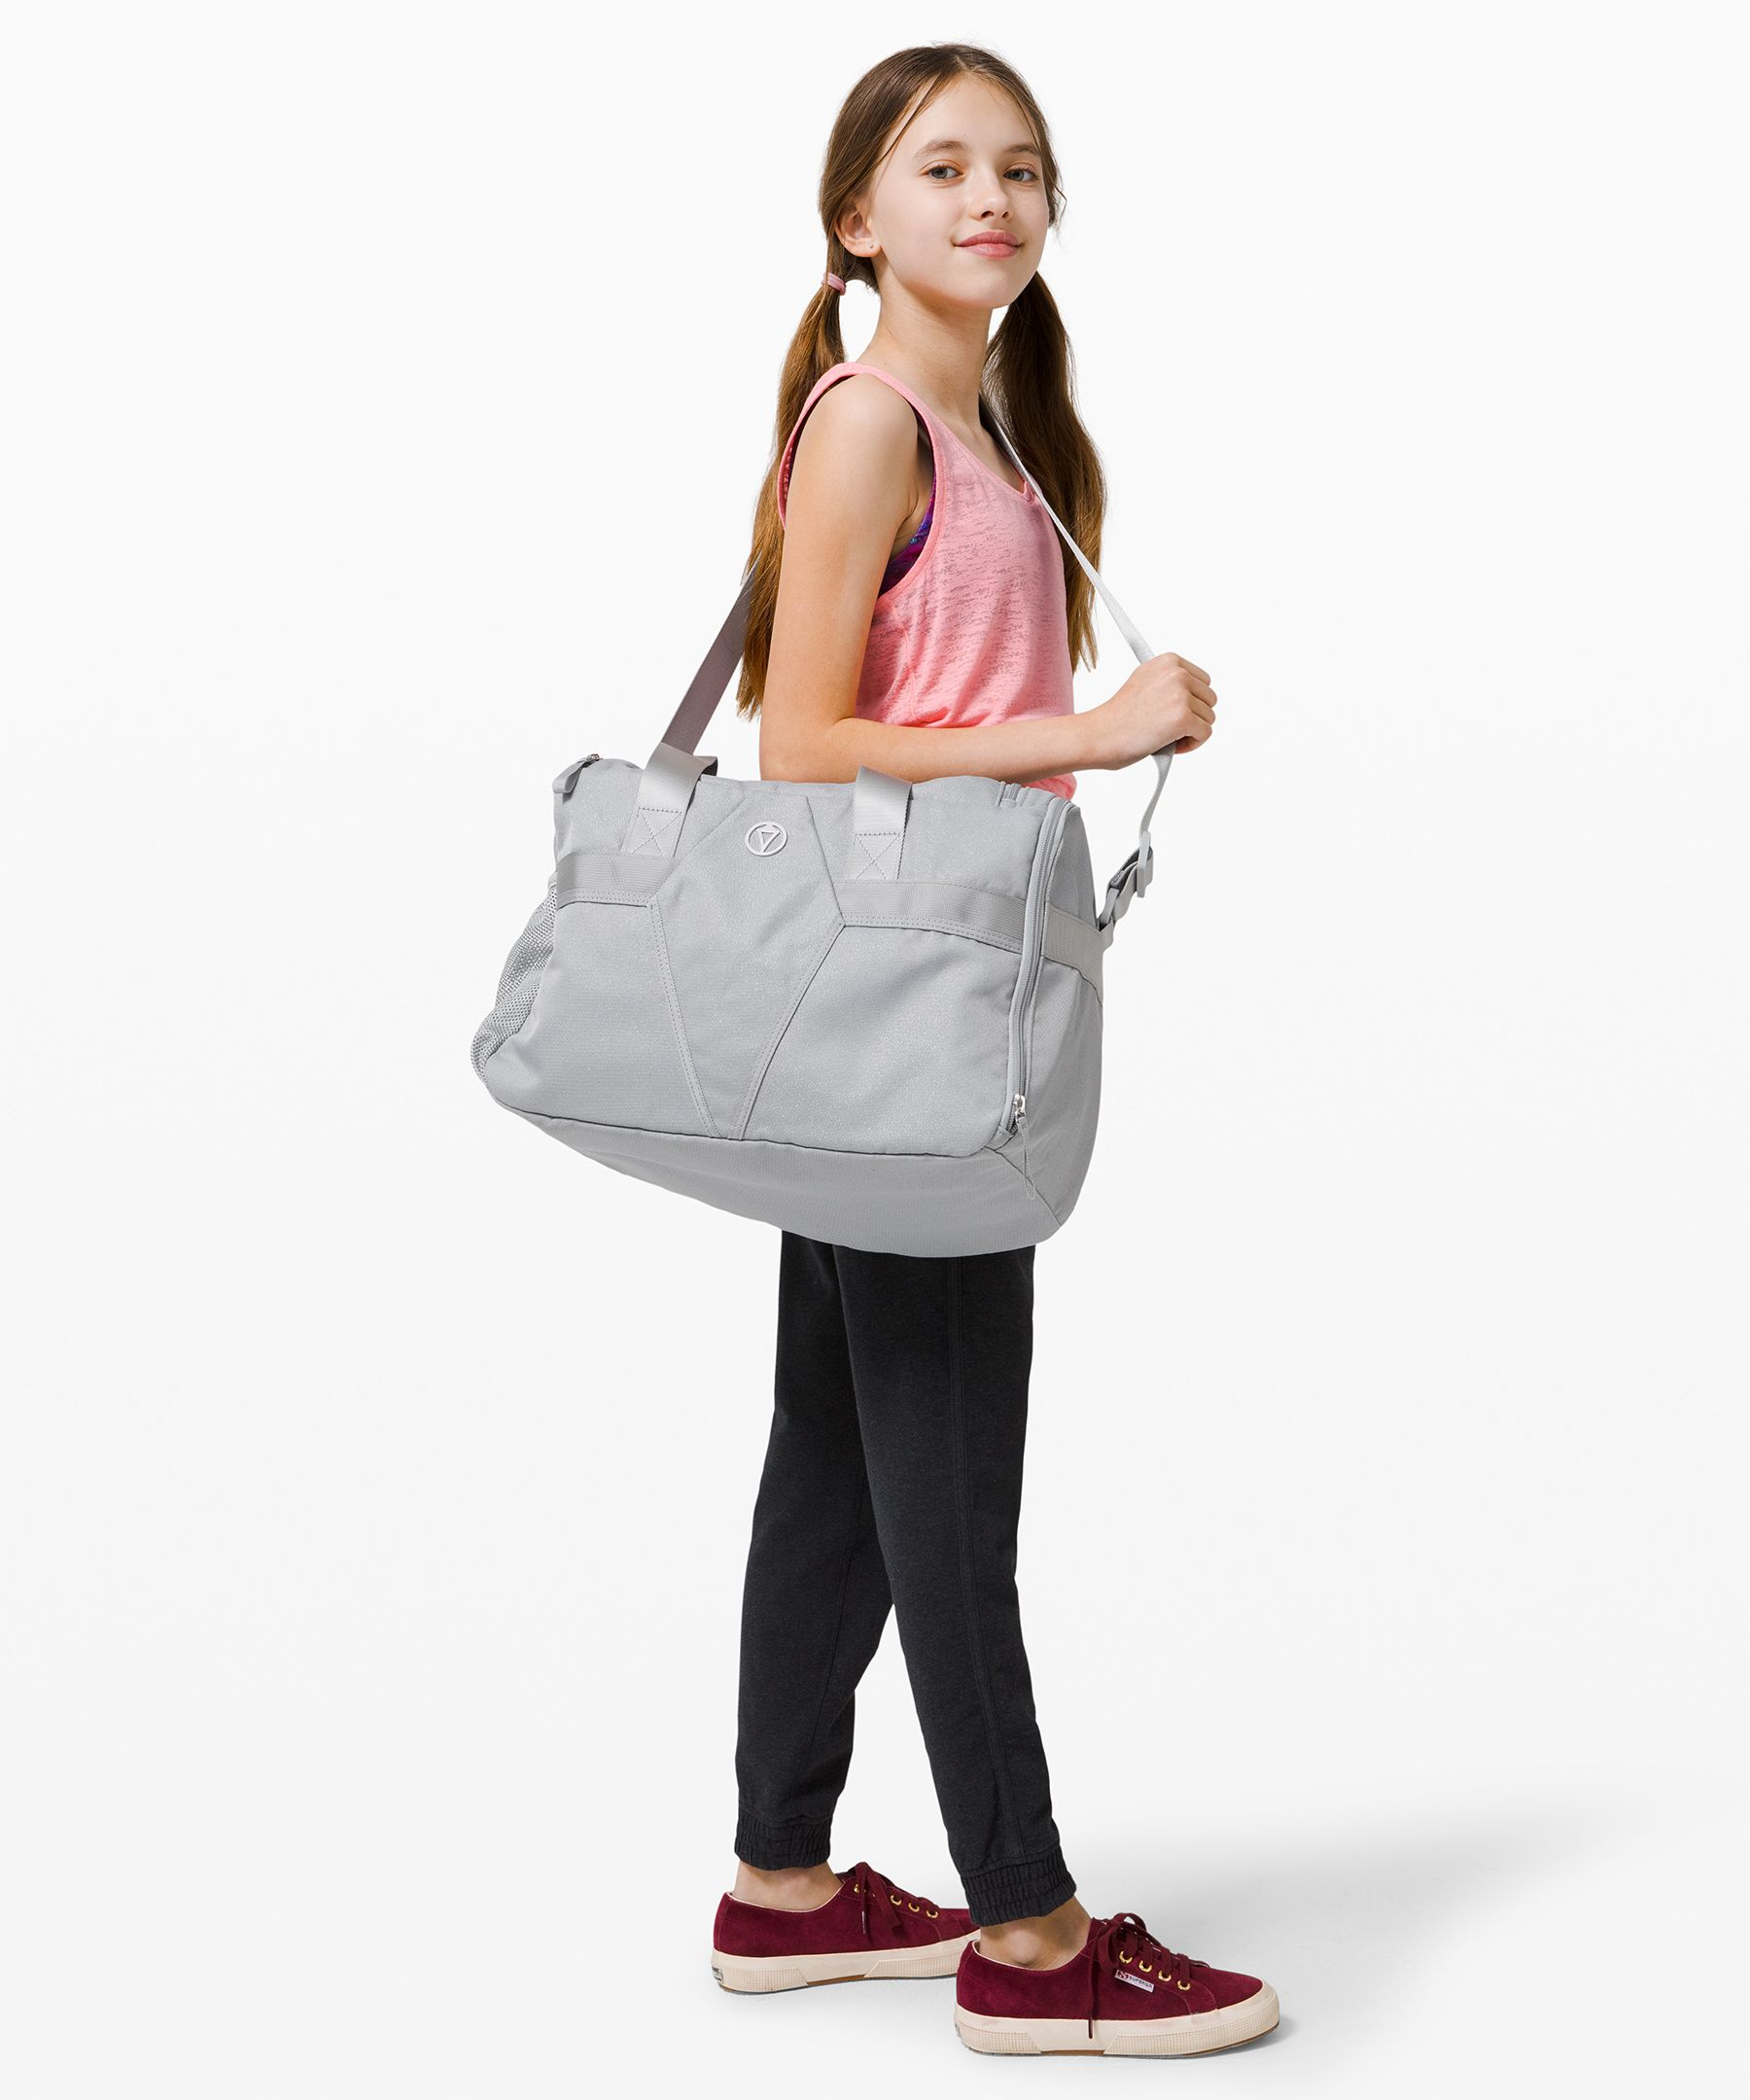 This spacious duffel was  designed with multiple pockets  to separate her gear and keep  her organized.